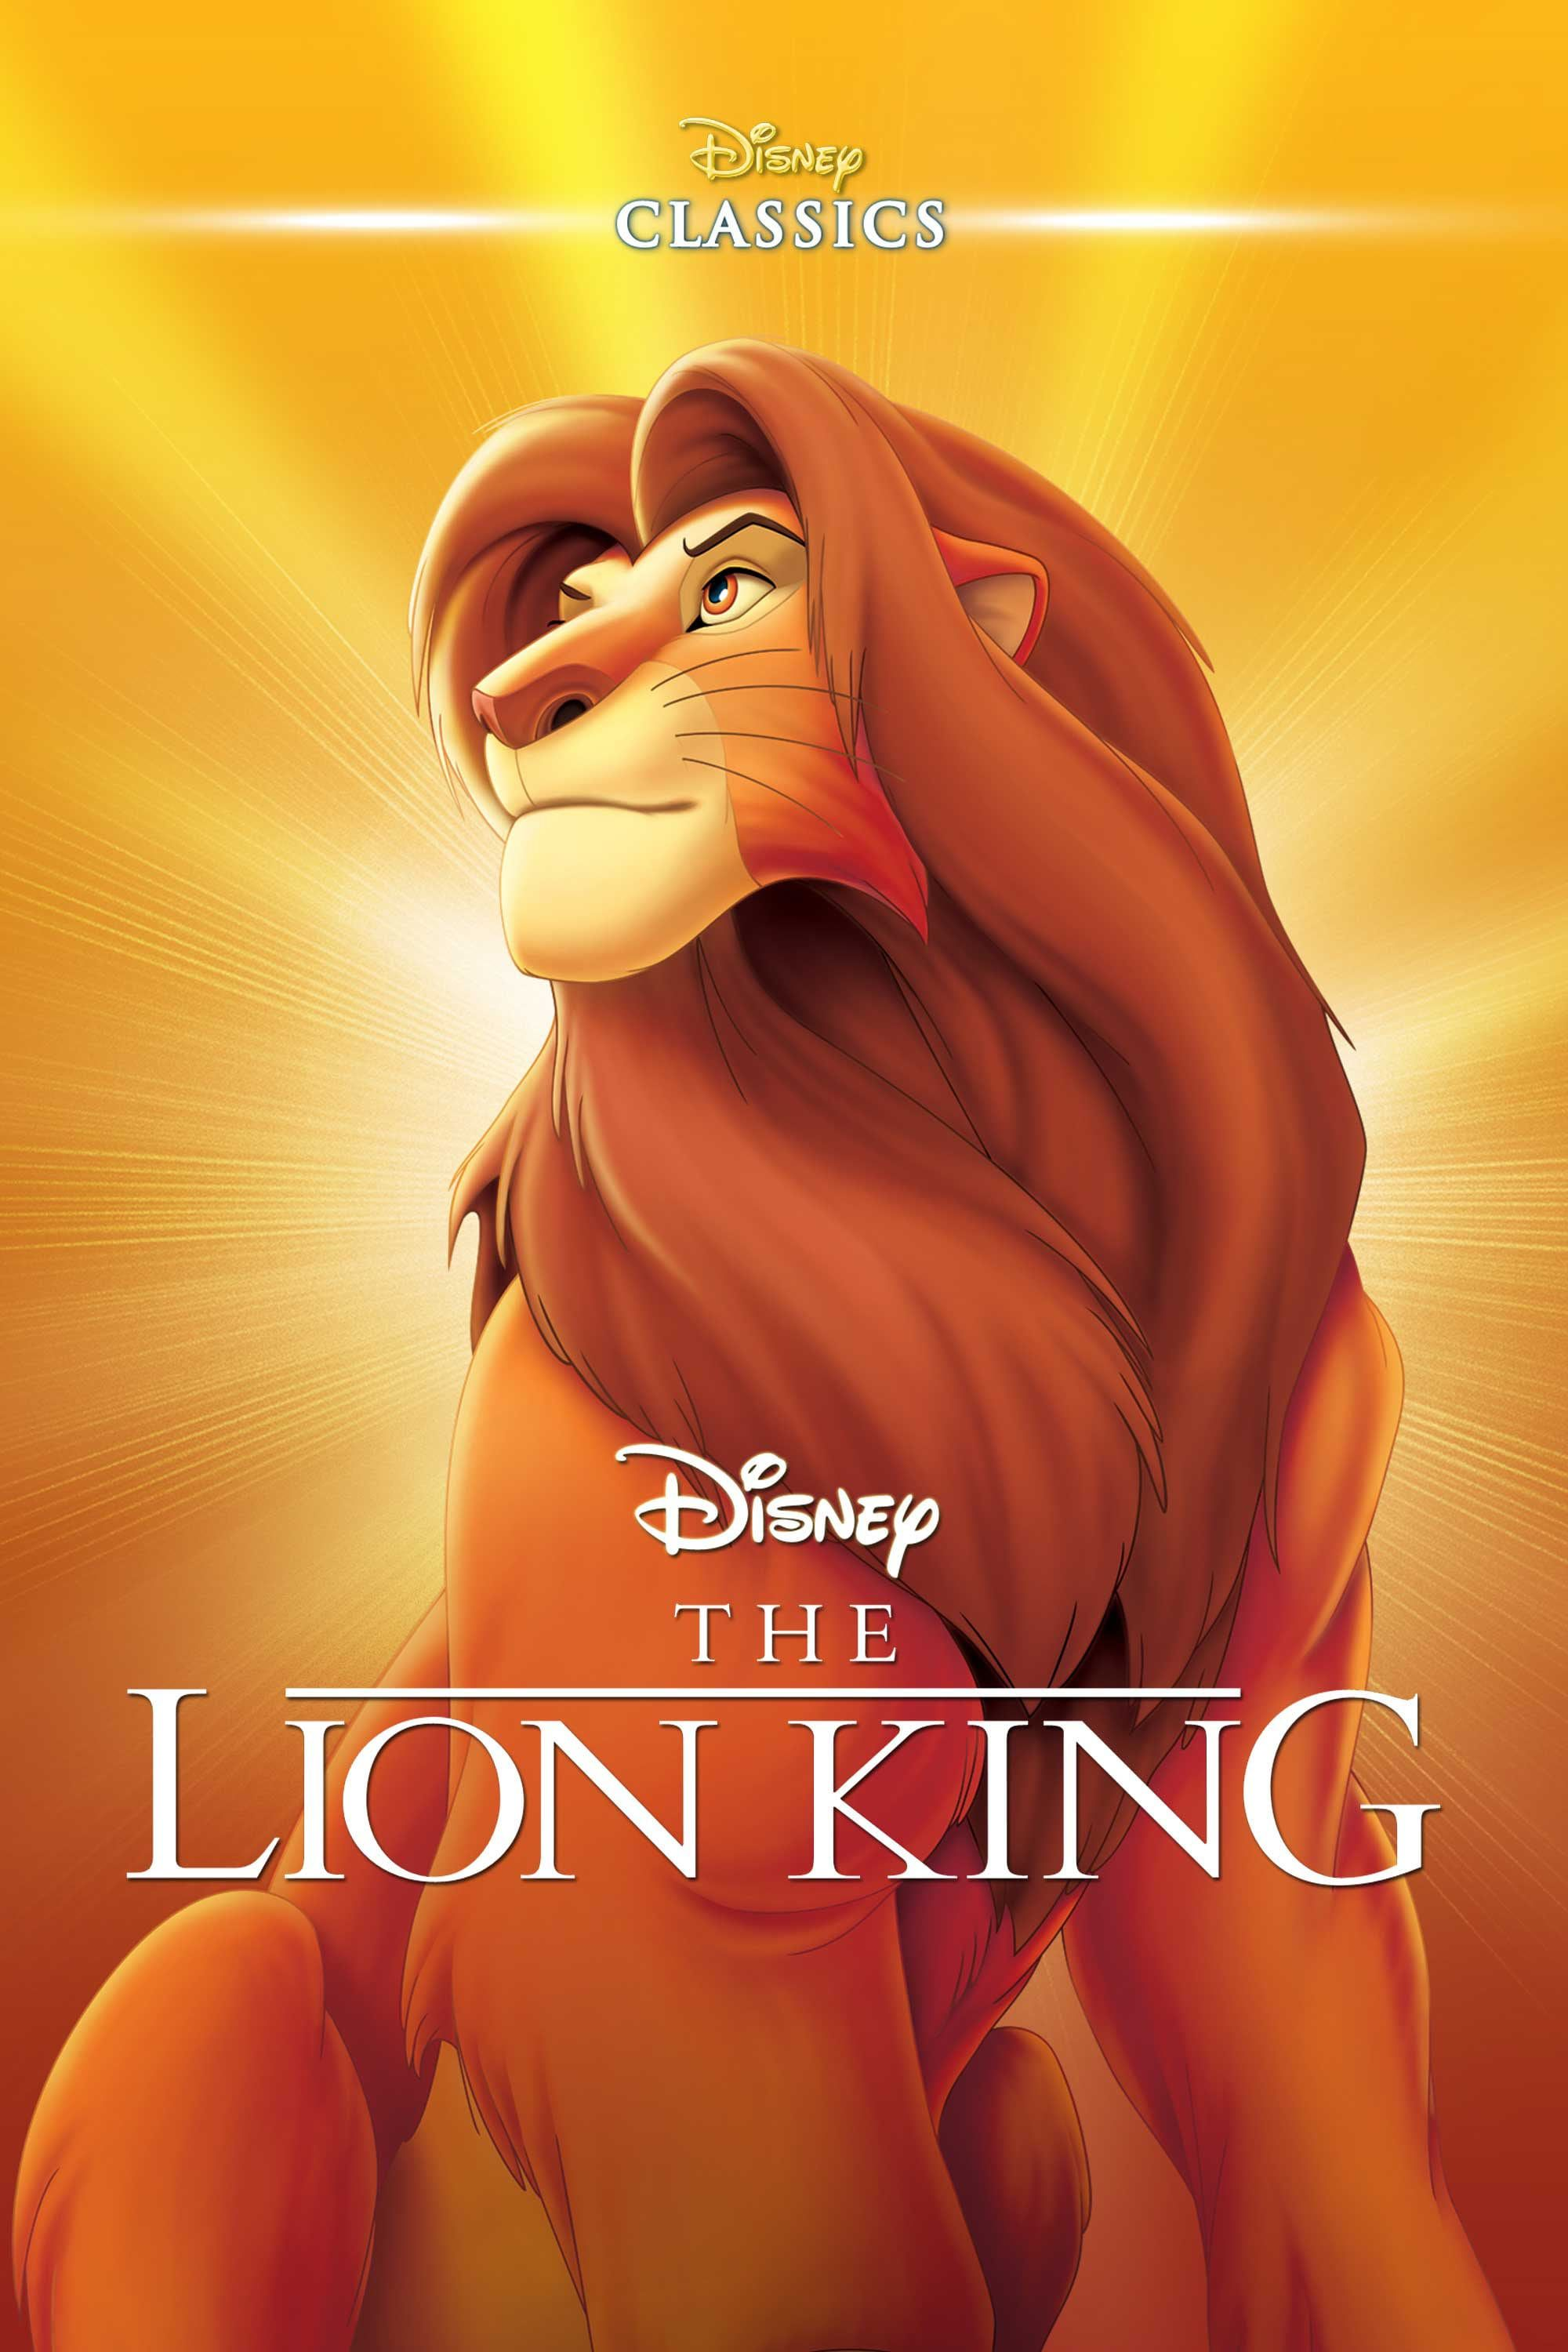 the lion king 1994 full movie free download